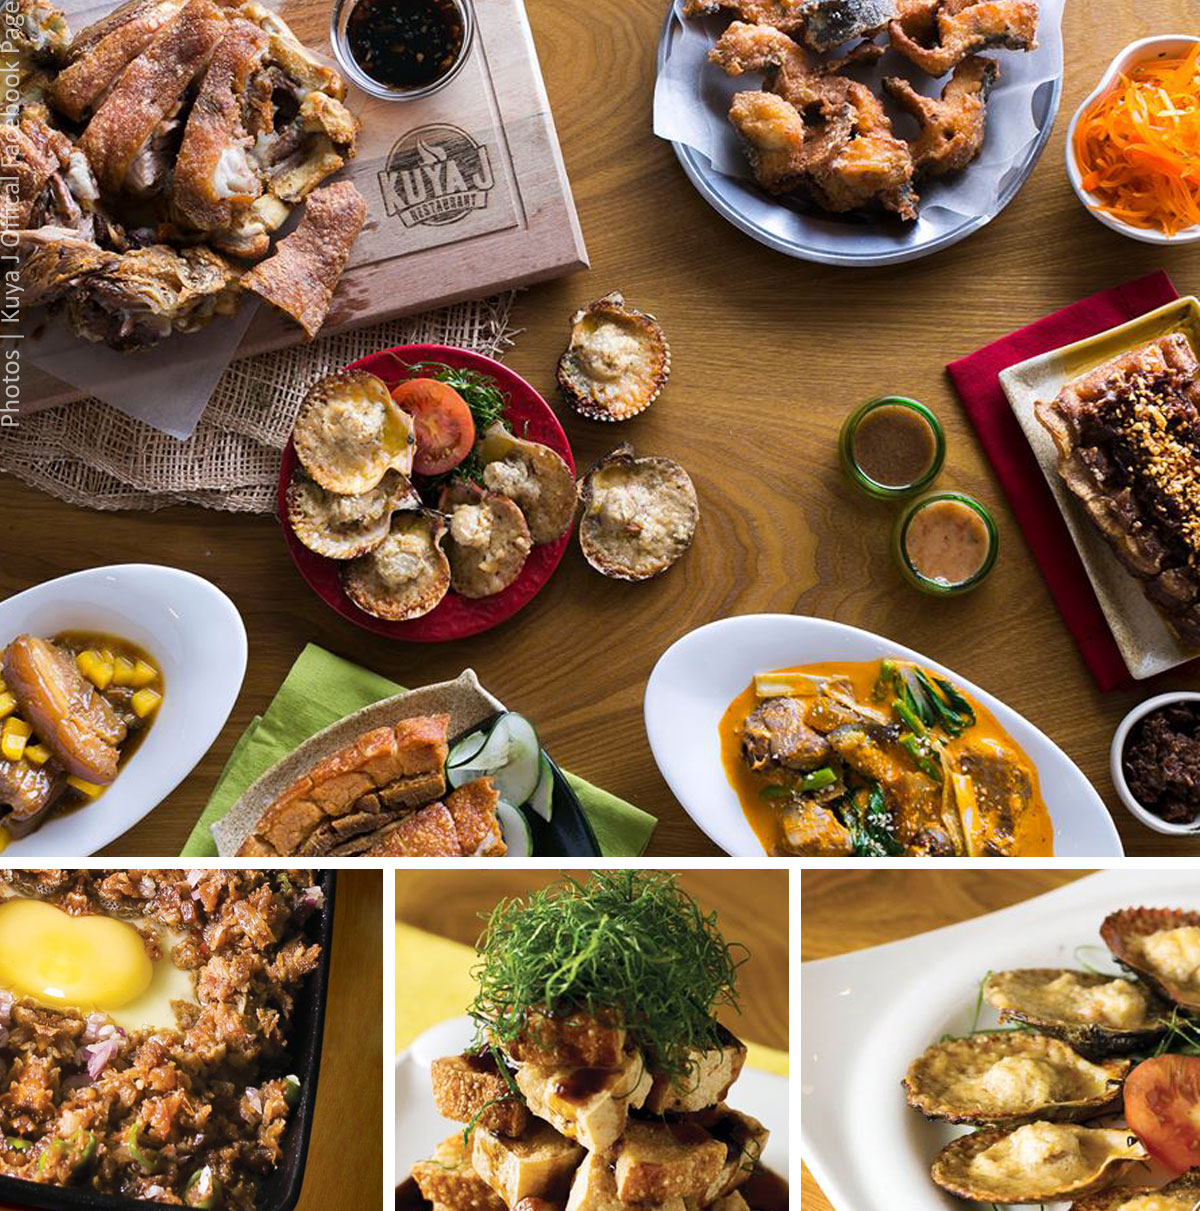 Kuya J Restaurant | 10 Dining Spots in Cebu that Make You #Foodgasm